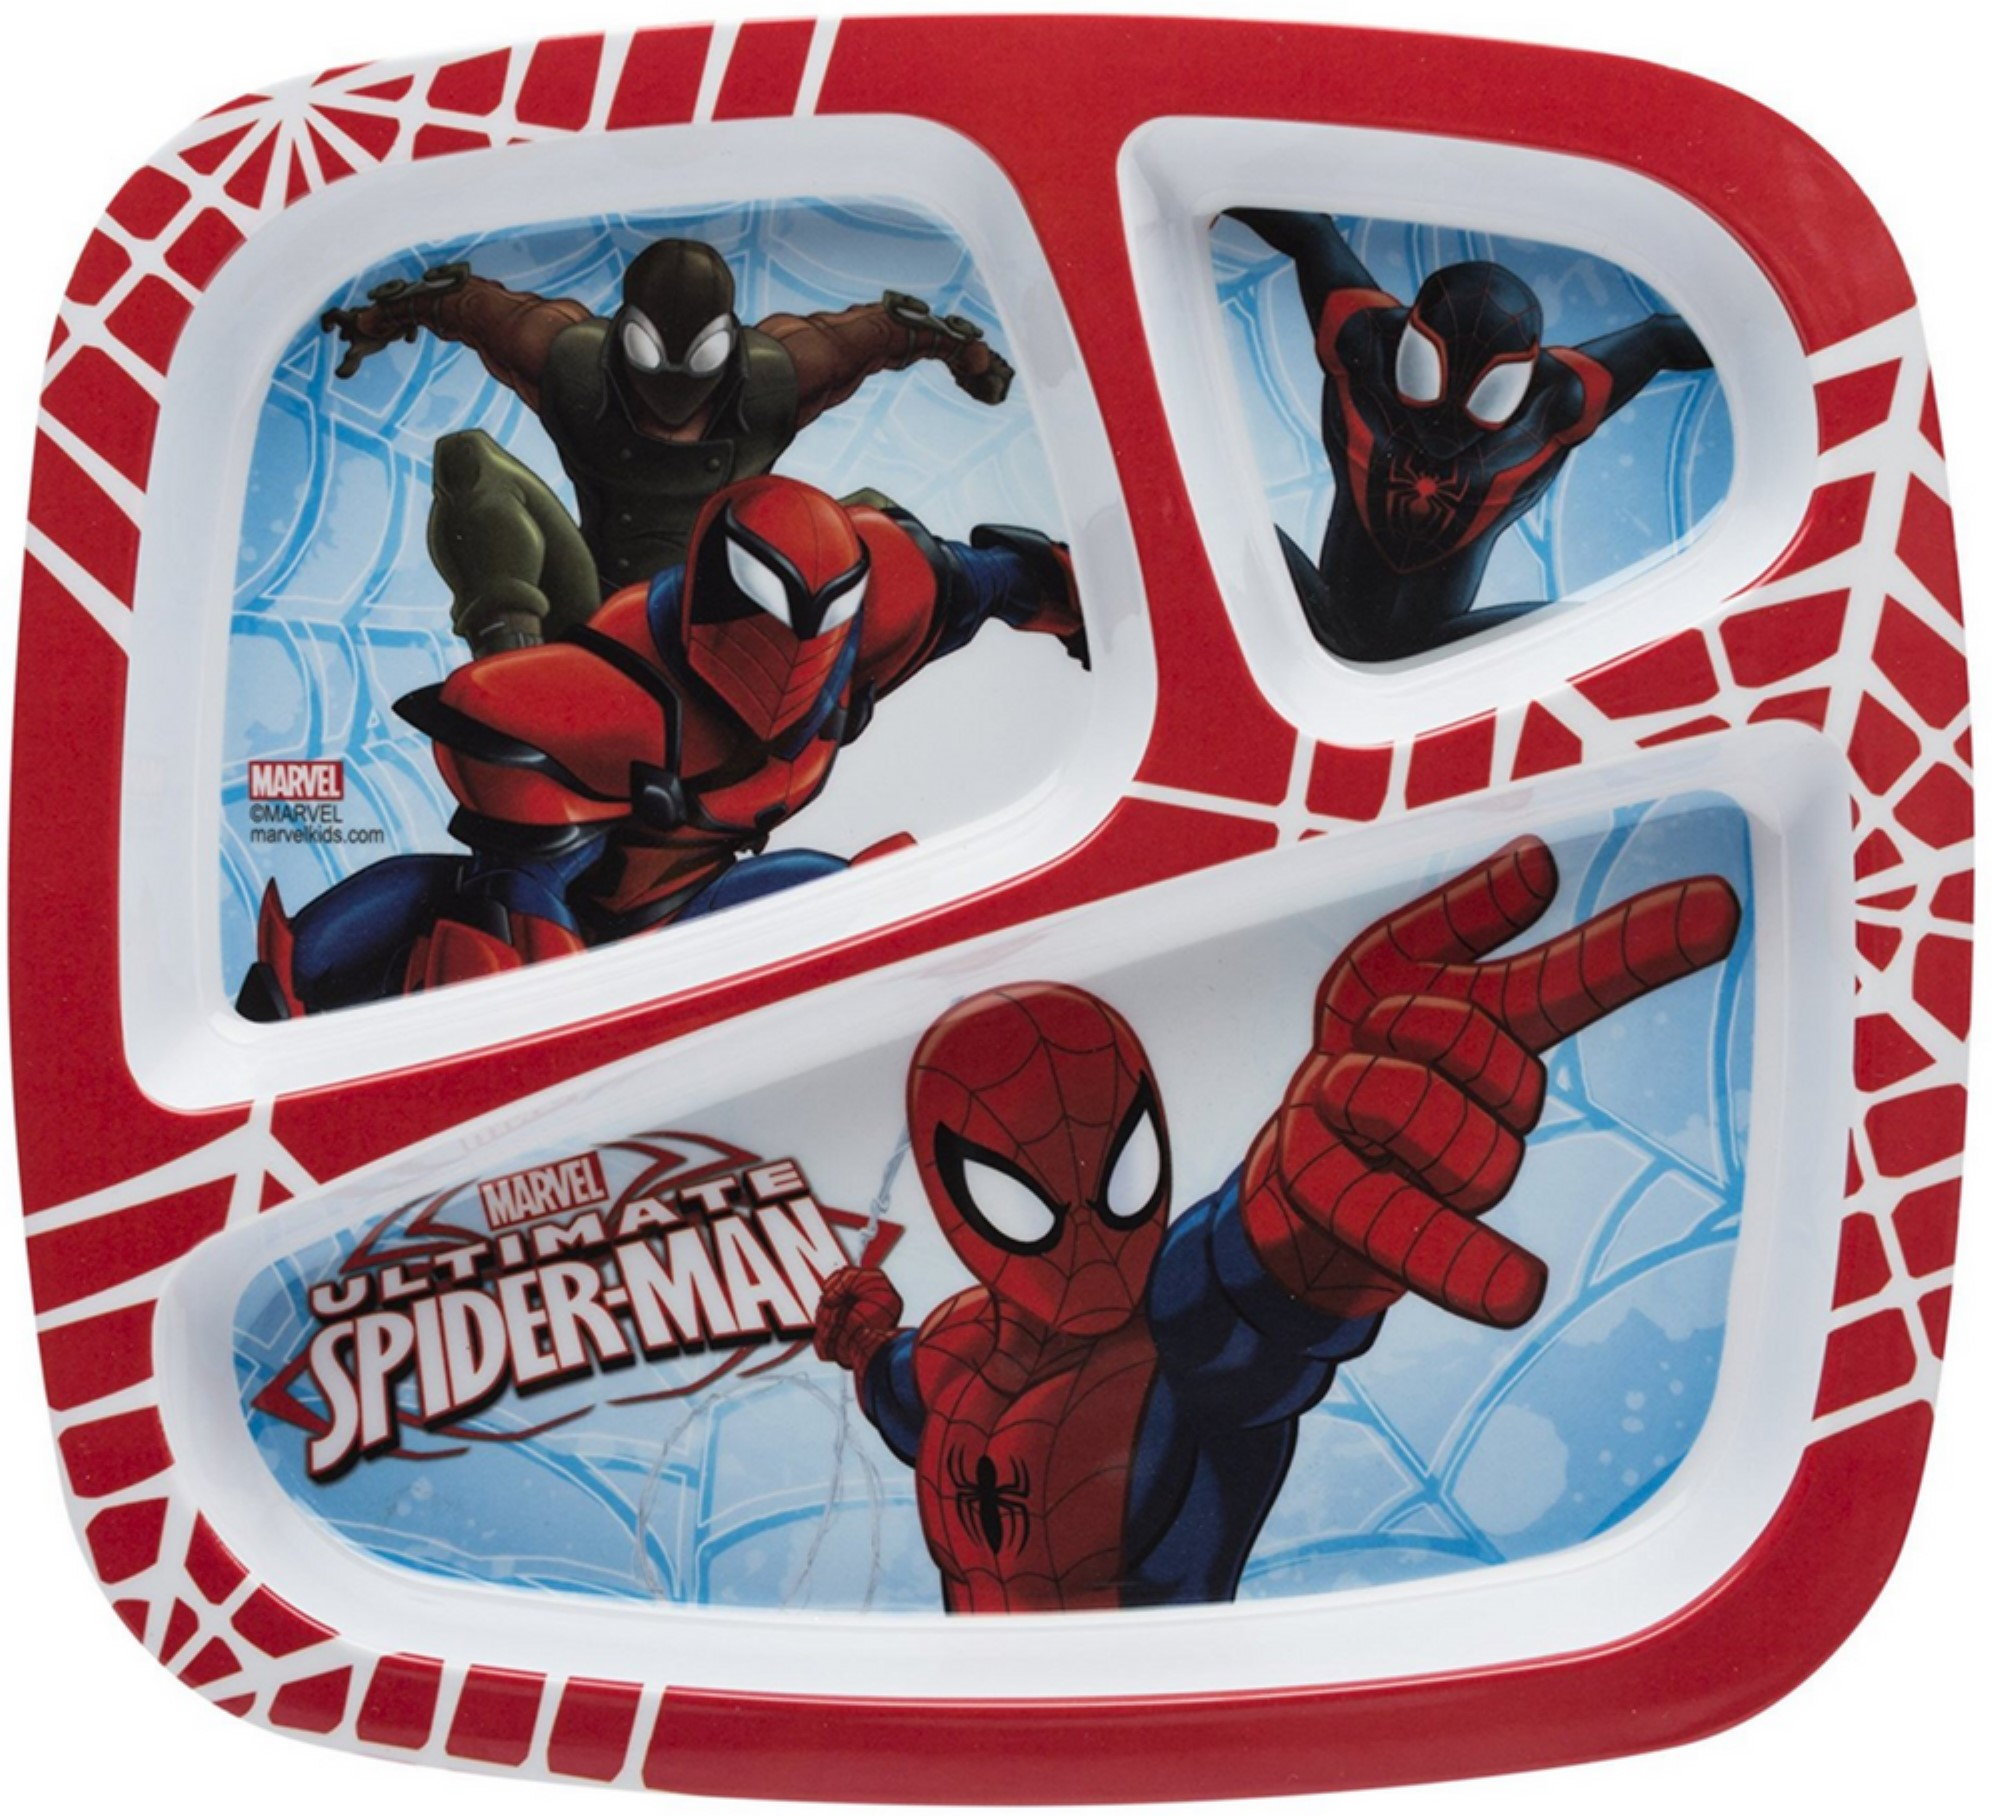 Zak! Designs 3-Section Plate, Ultimate Spiderman 1 ea (Pack of 3) by